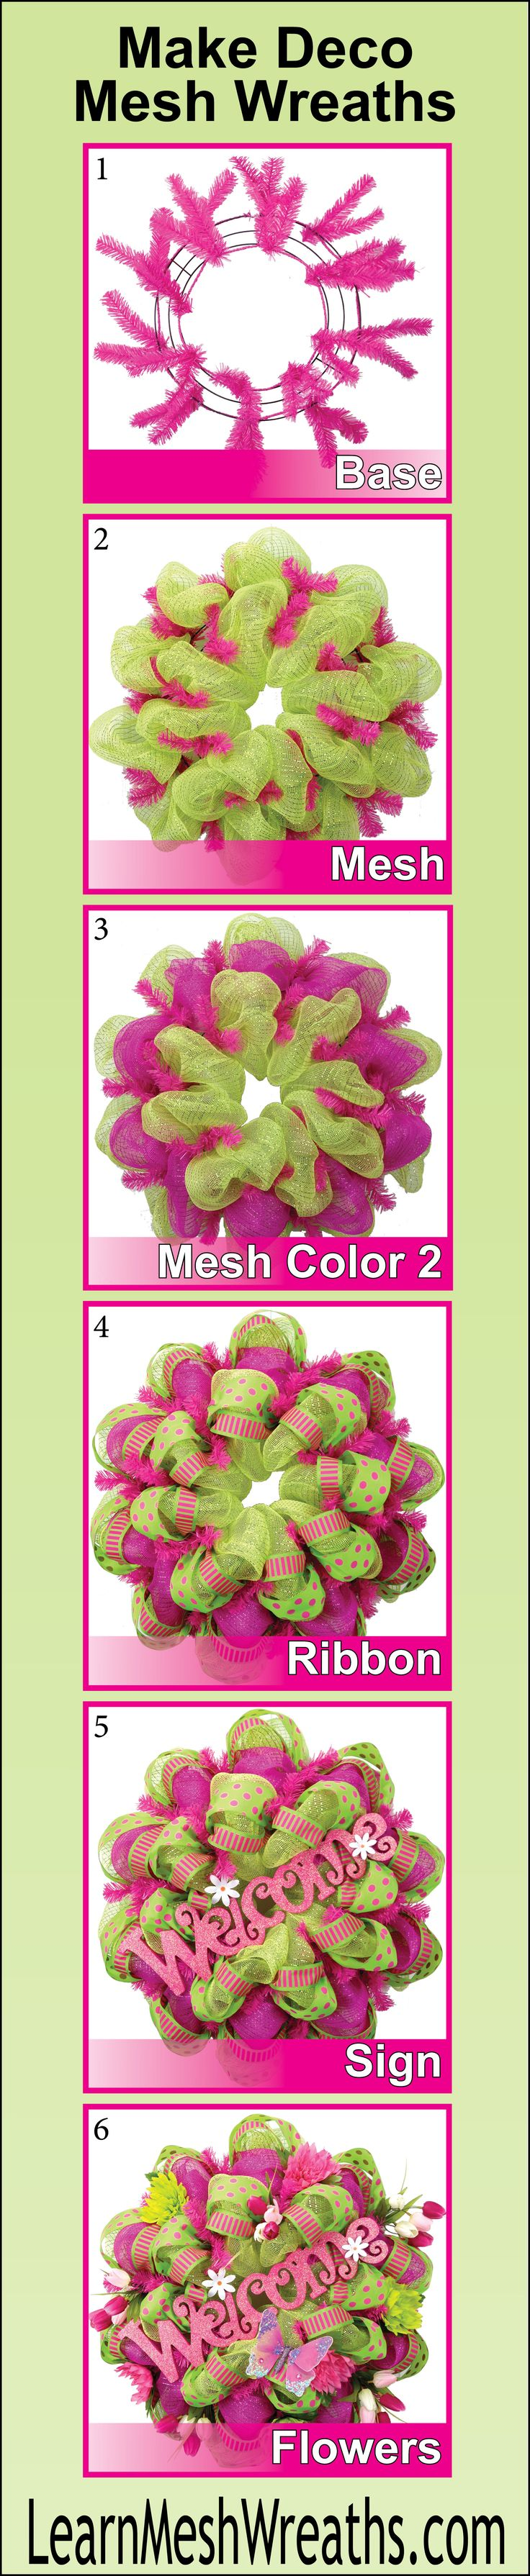 Join the DIY deco mesh wreath CRAZE! Learn step-by-step how to make beautiful mesh wreaths to give as gifts or sell online. Learn to make a perfect base, add mesh, ribbon, signs, ornaments and silk flowers. Plus bonuses on where to purchase supplies, how to ship wreaths, how to make garlands, and different styles of mesh wreaths. Click the picture to learn more. #decomesh #wreaths #DIY